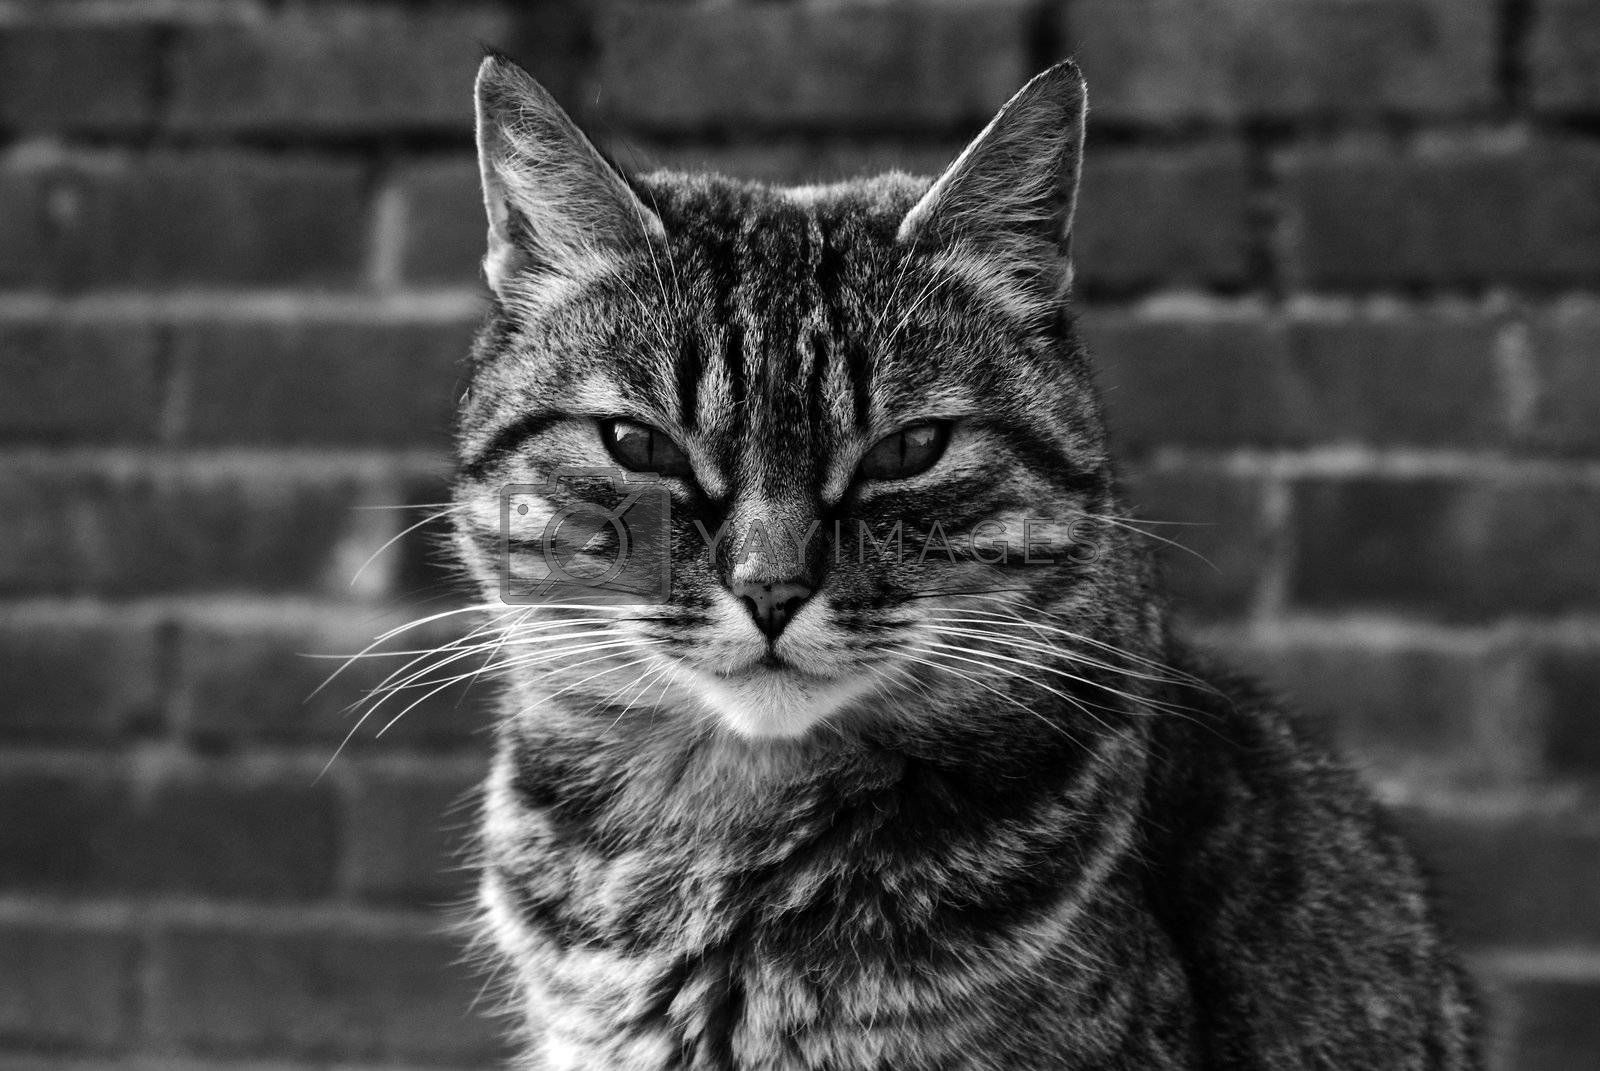 Cat in black and white portrait